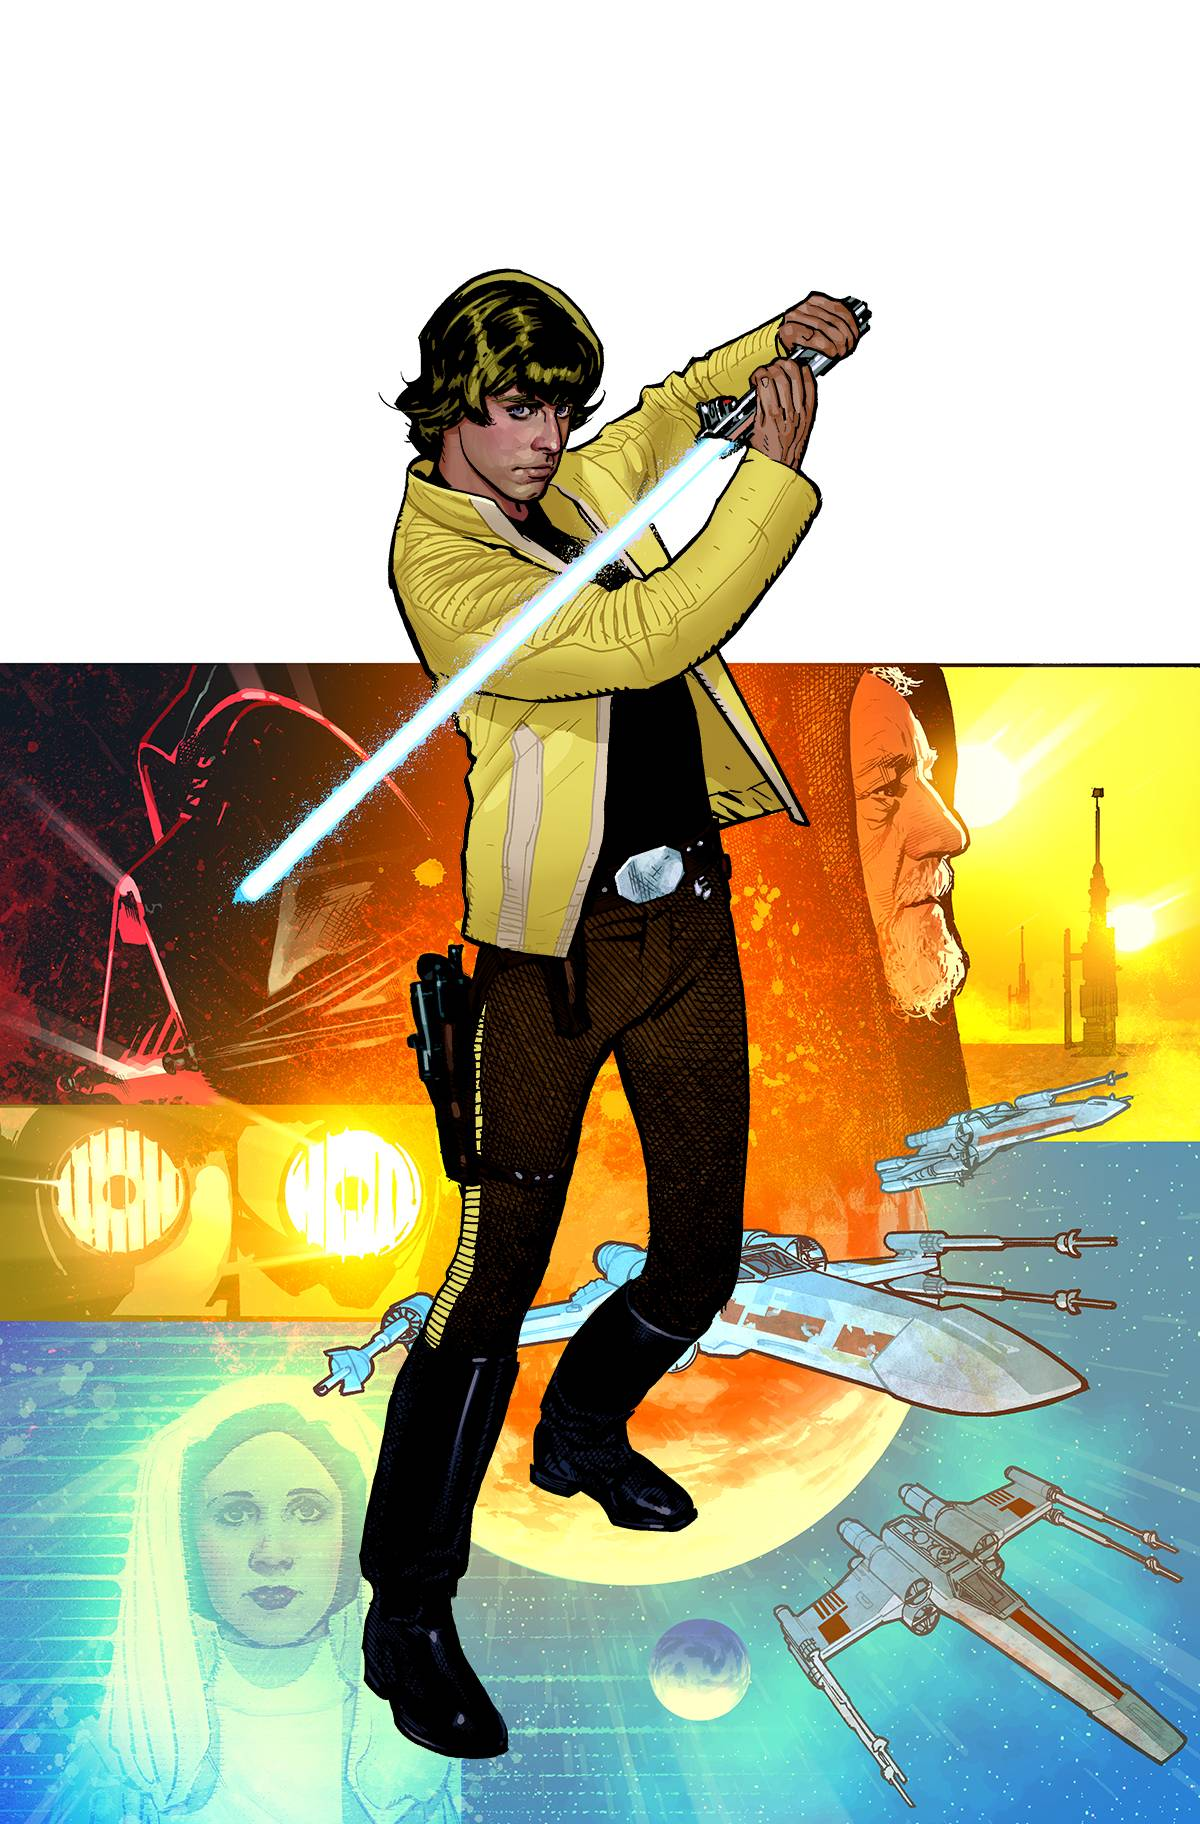 brianmichaelbendis: Luke Skywalker by Adam Hughes Beautiful.